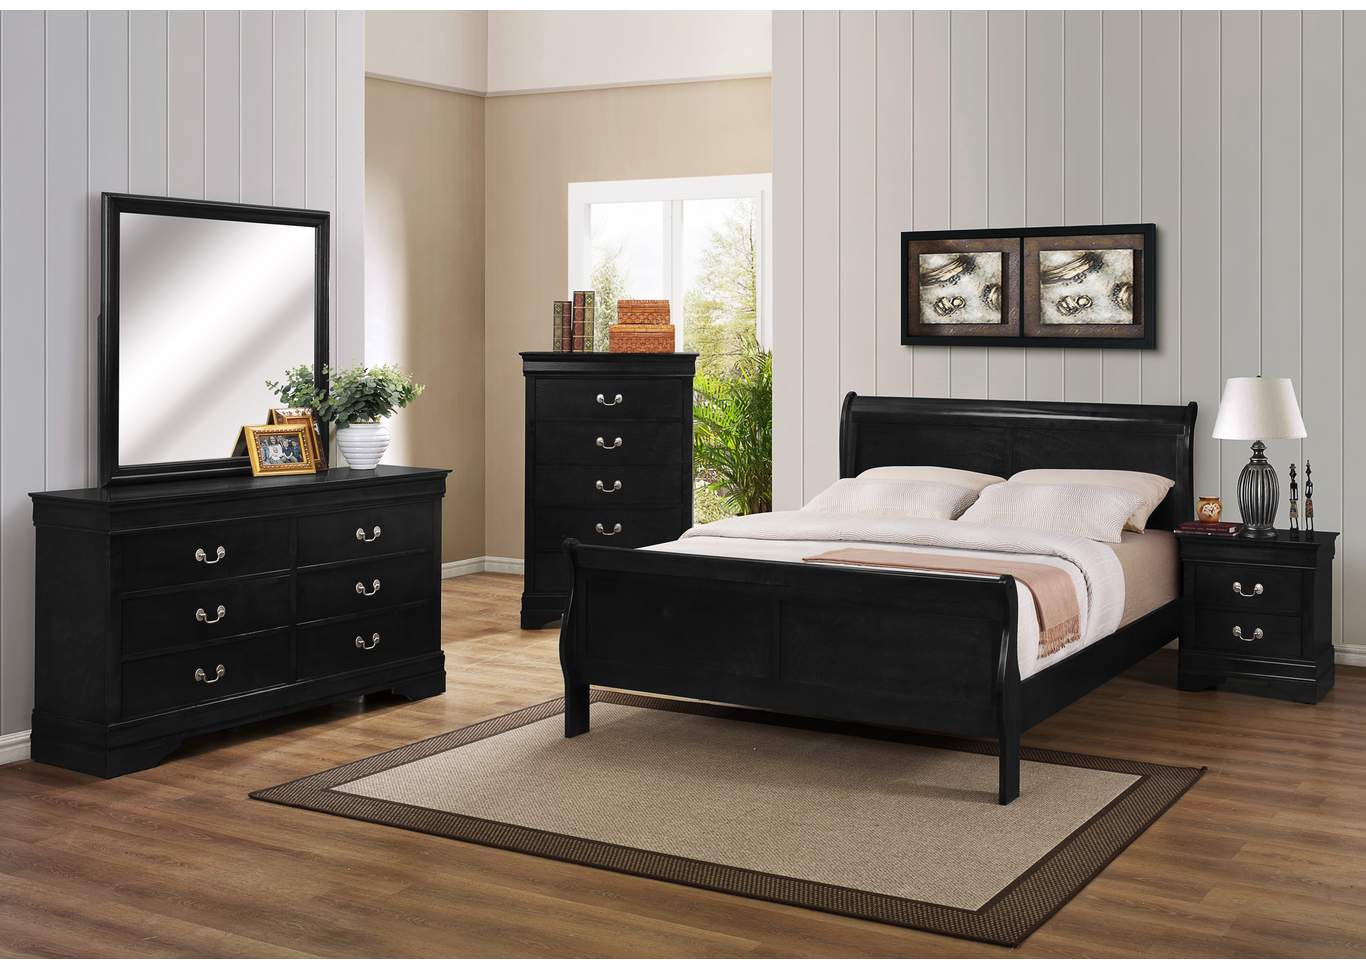 Louis Philip Black King Sleigh Bed w/6 Drawer Dresser, Mirror and 5 Drawer Chest,Crown Mark